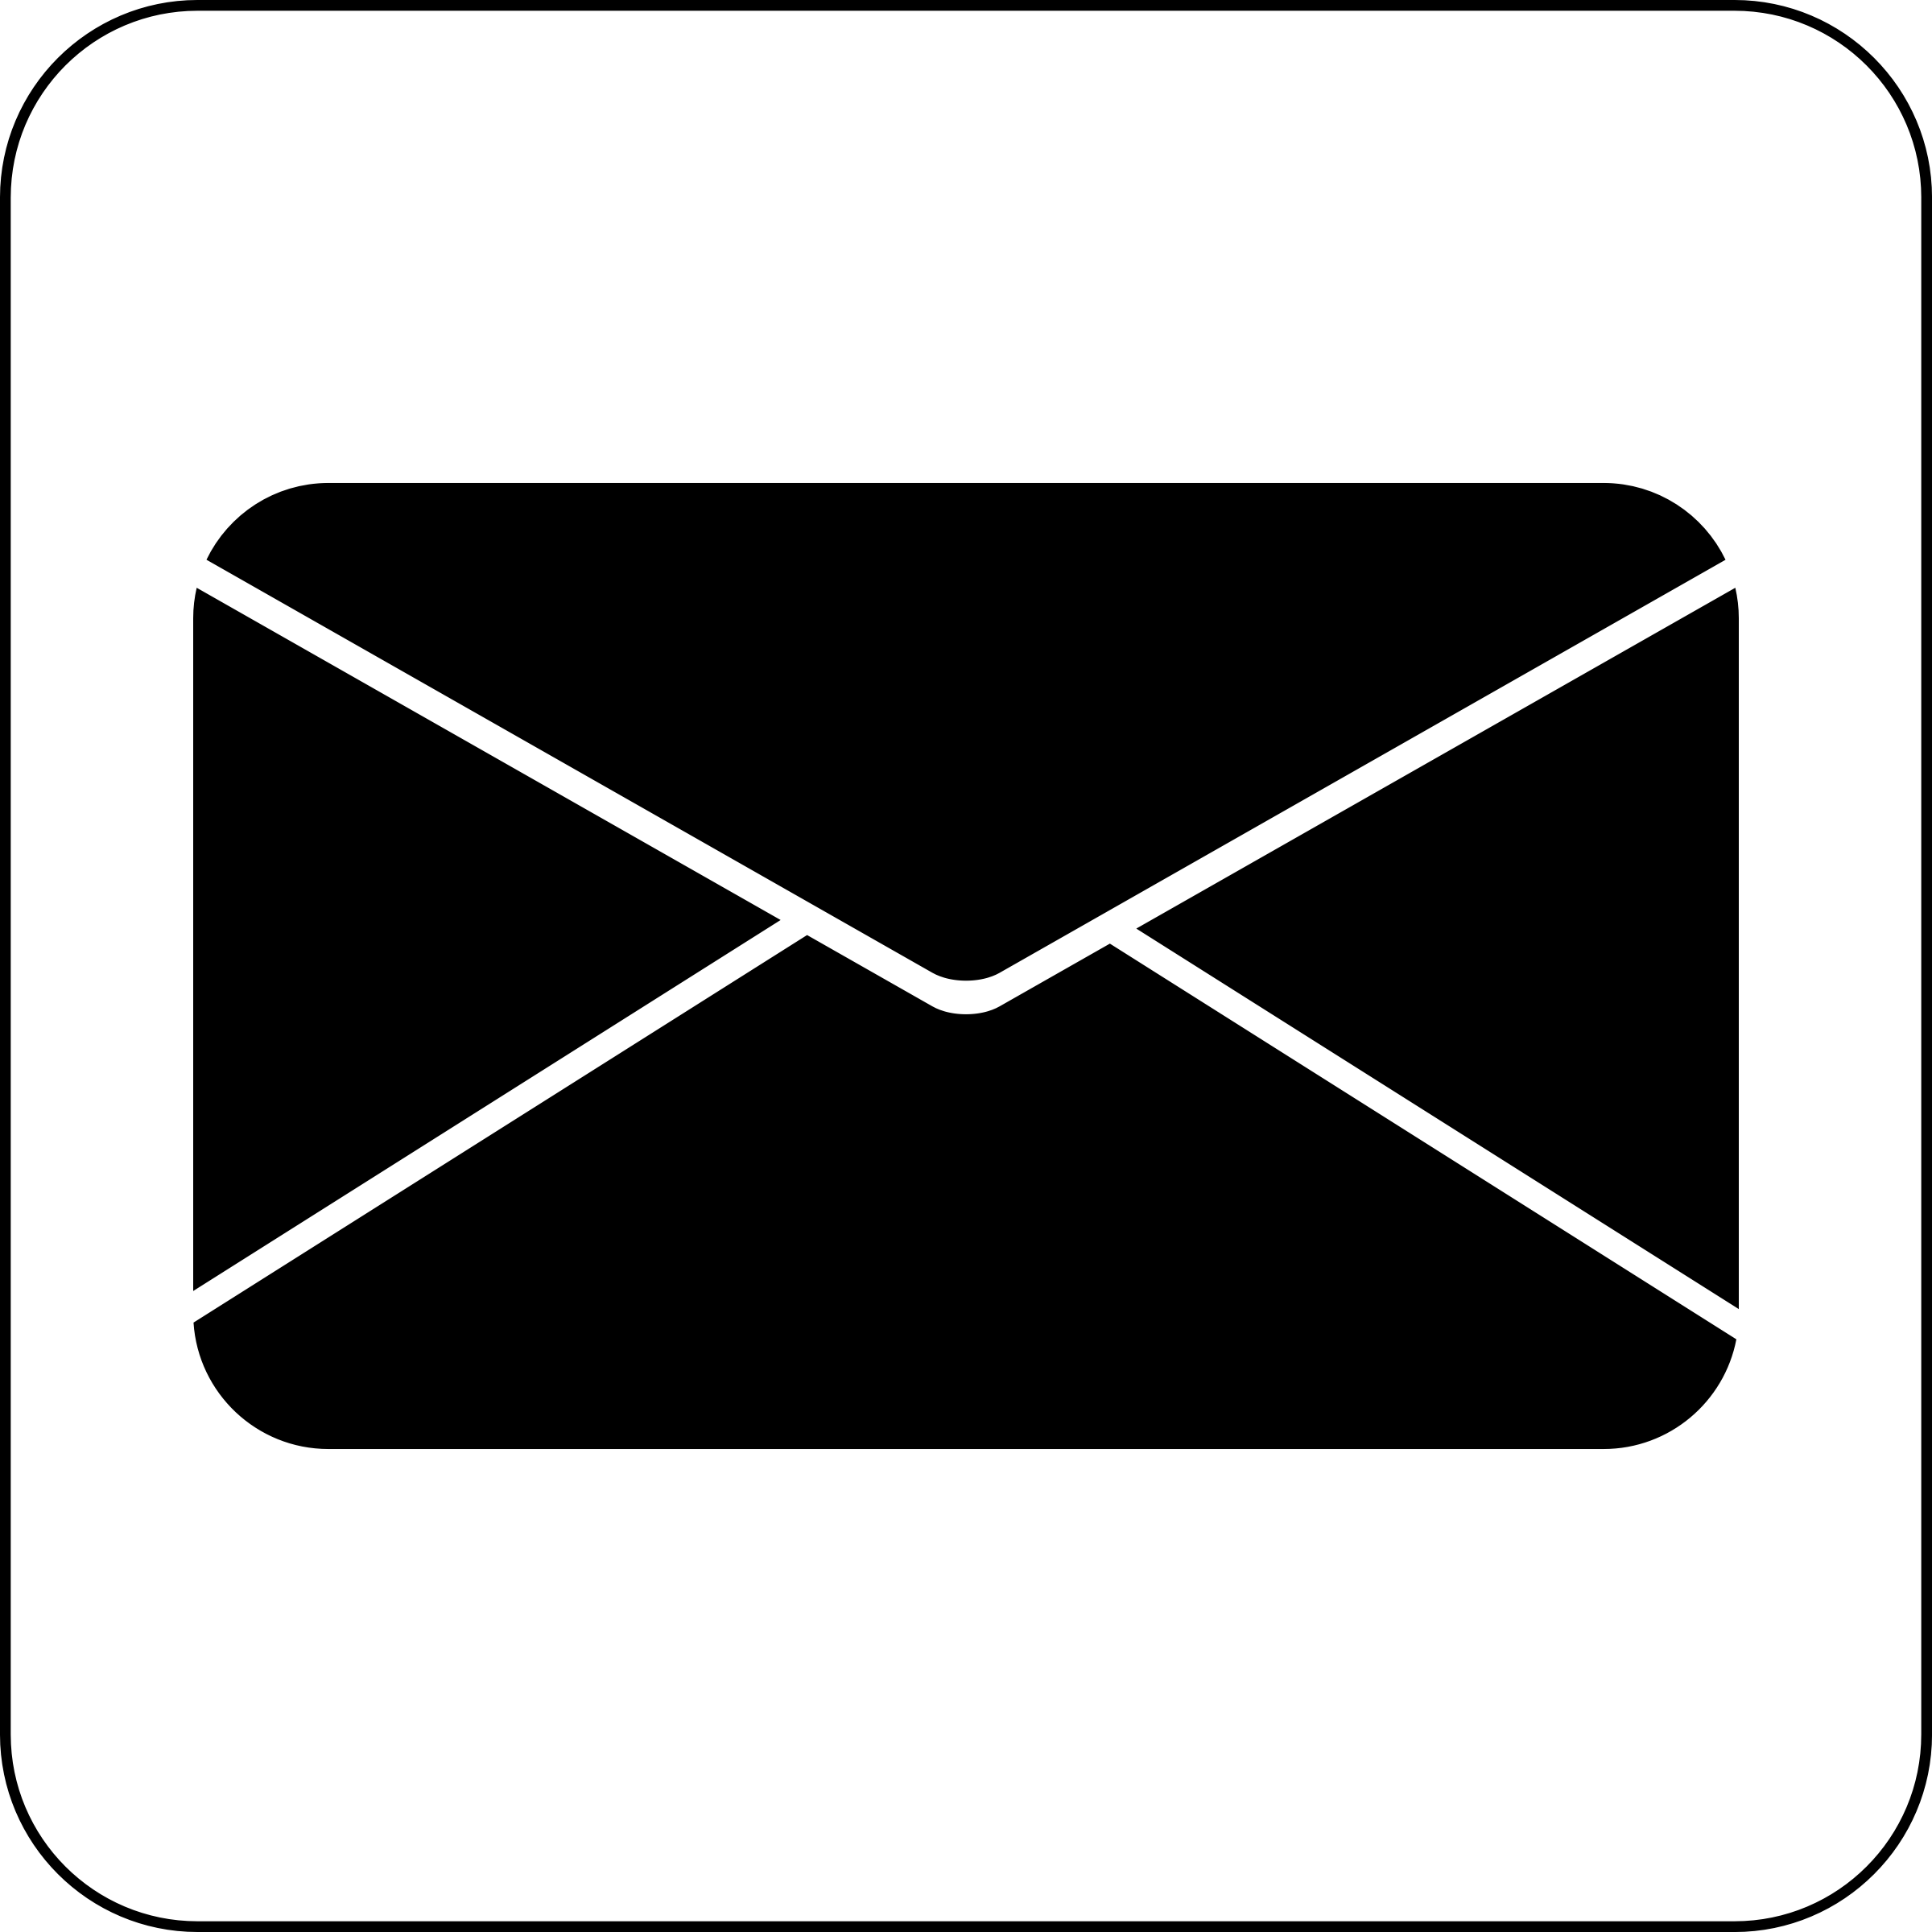 mail symbol clipart